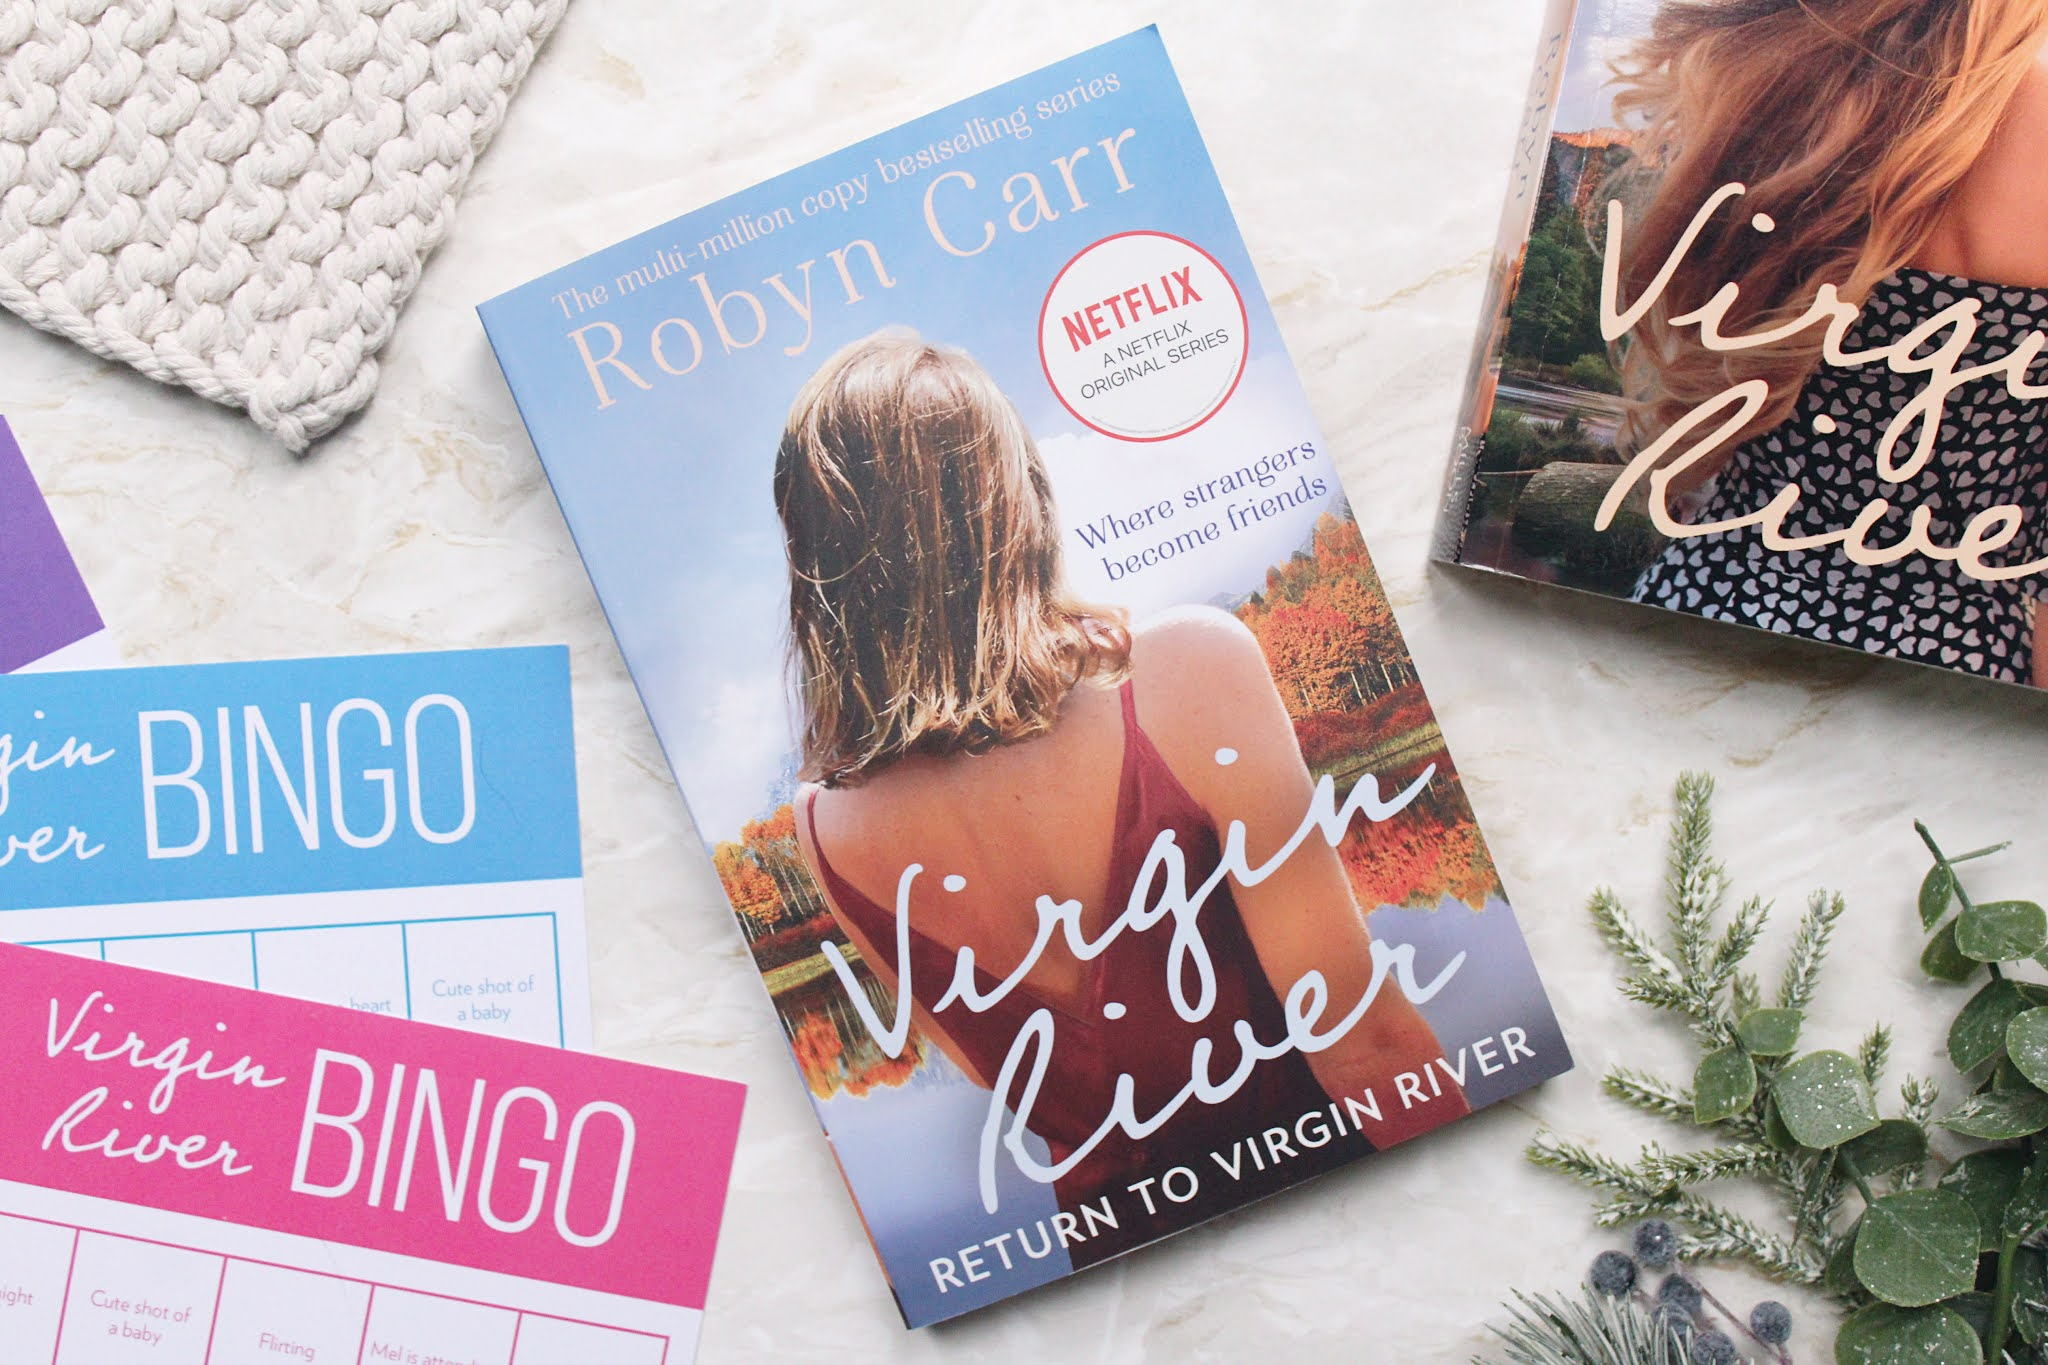 Return to Virgin River - Robyn Carr | Spoiler Free Book Review